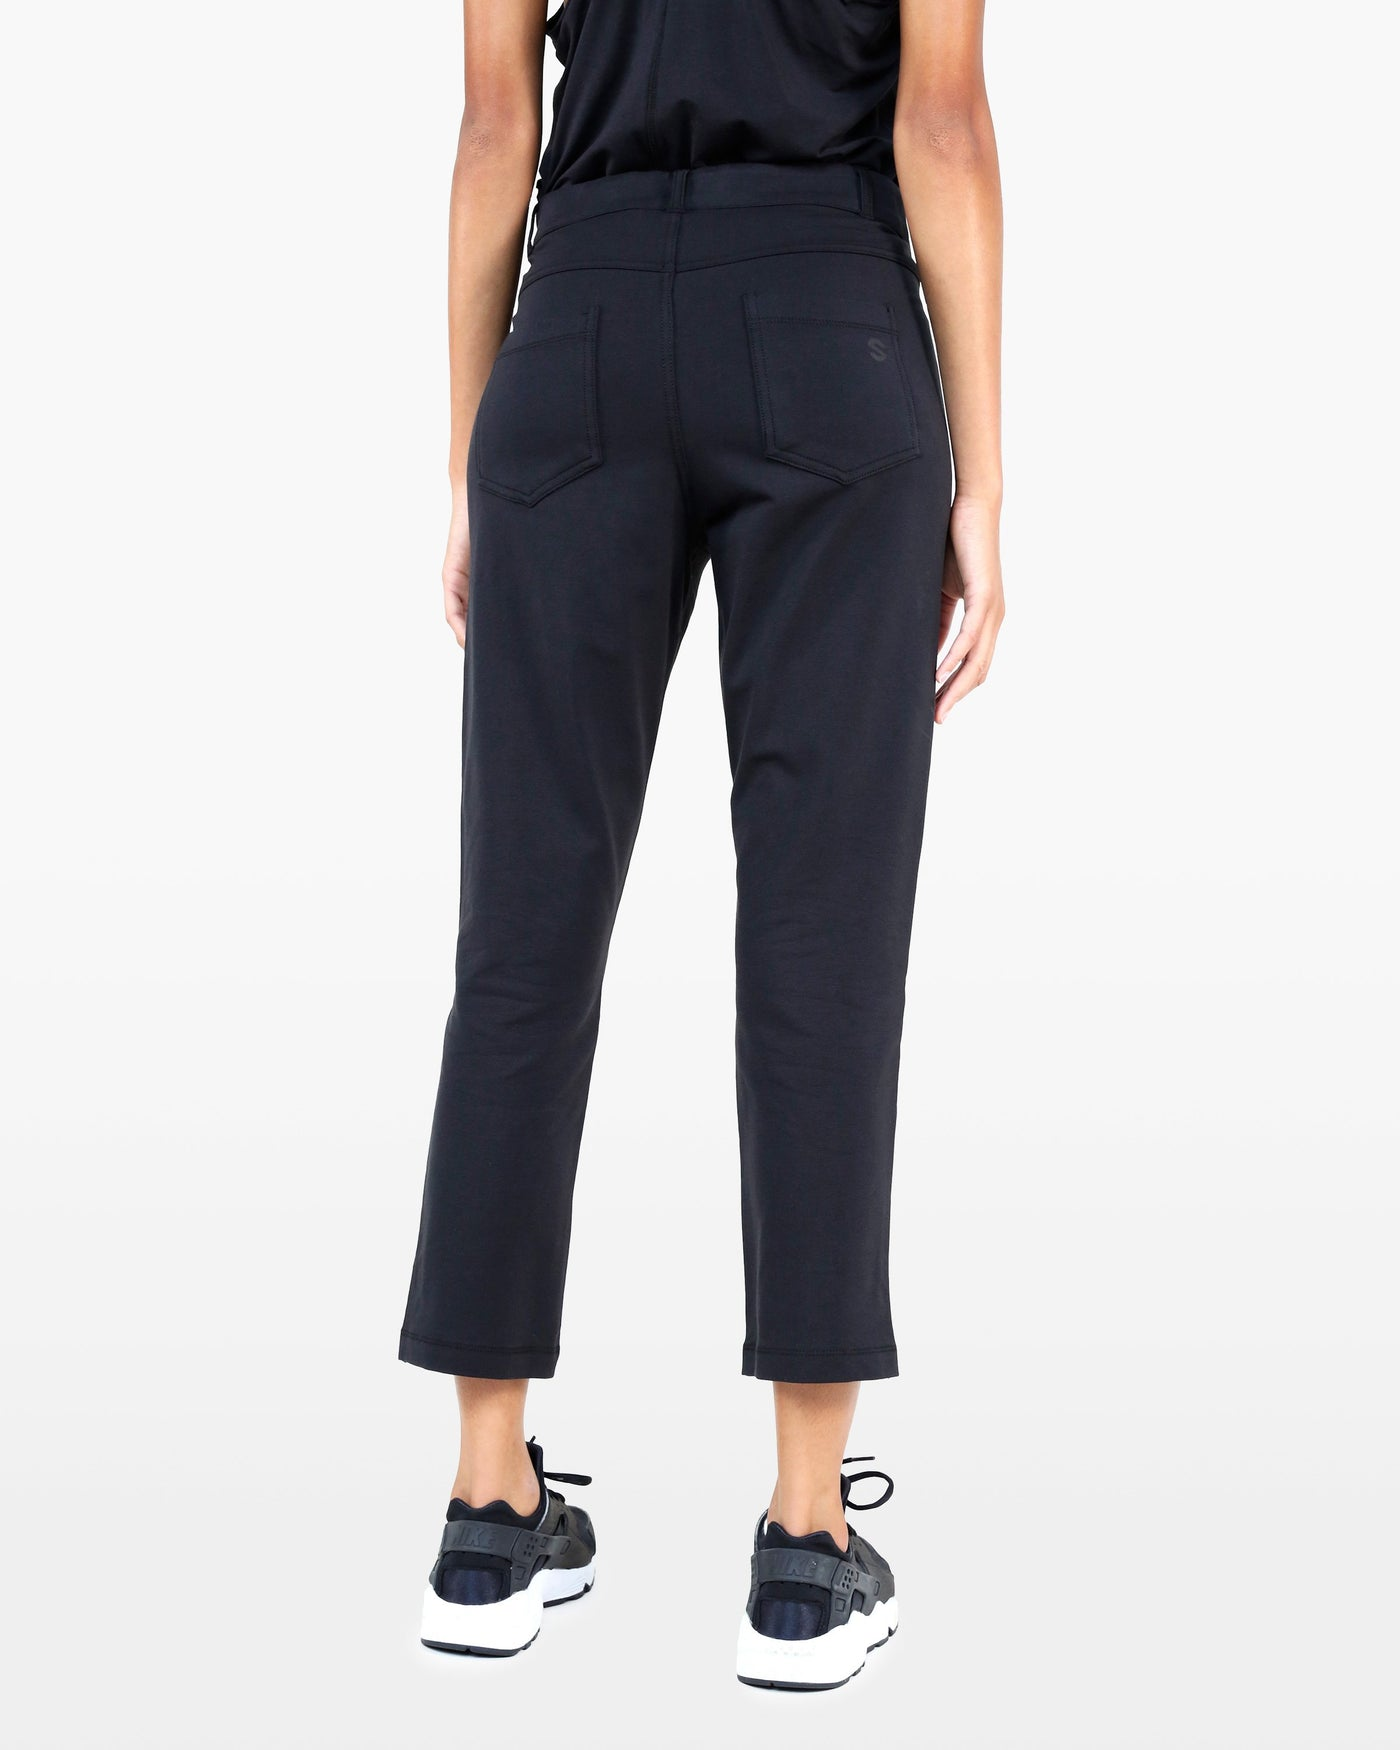 Yang Pant DTT in black